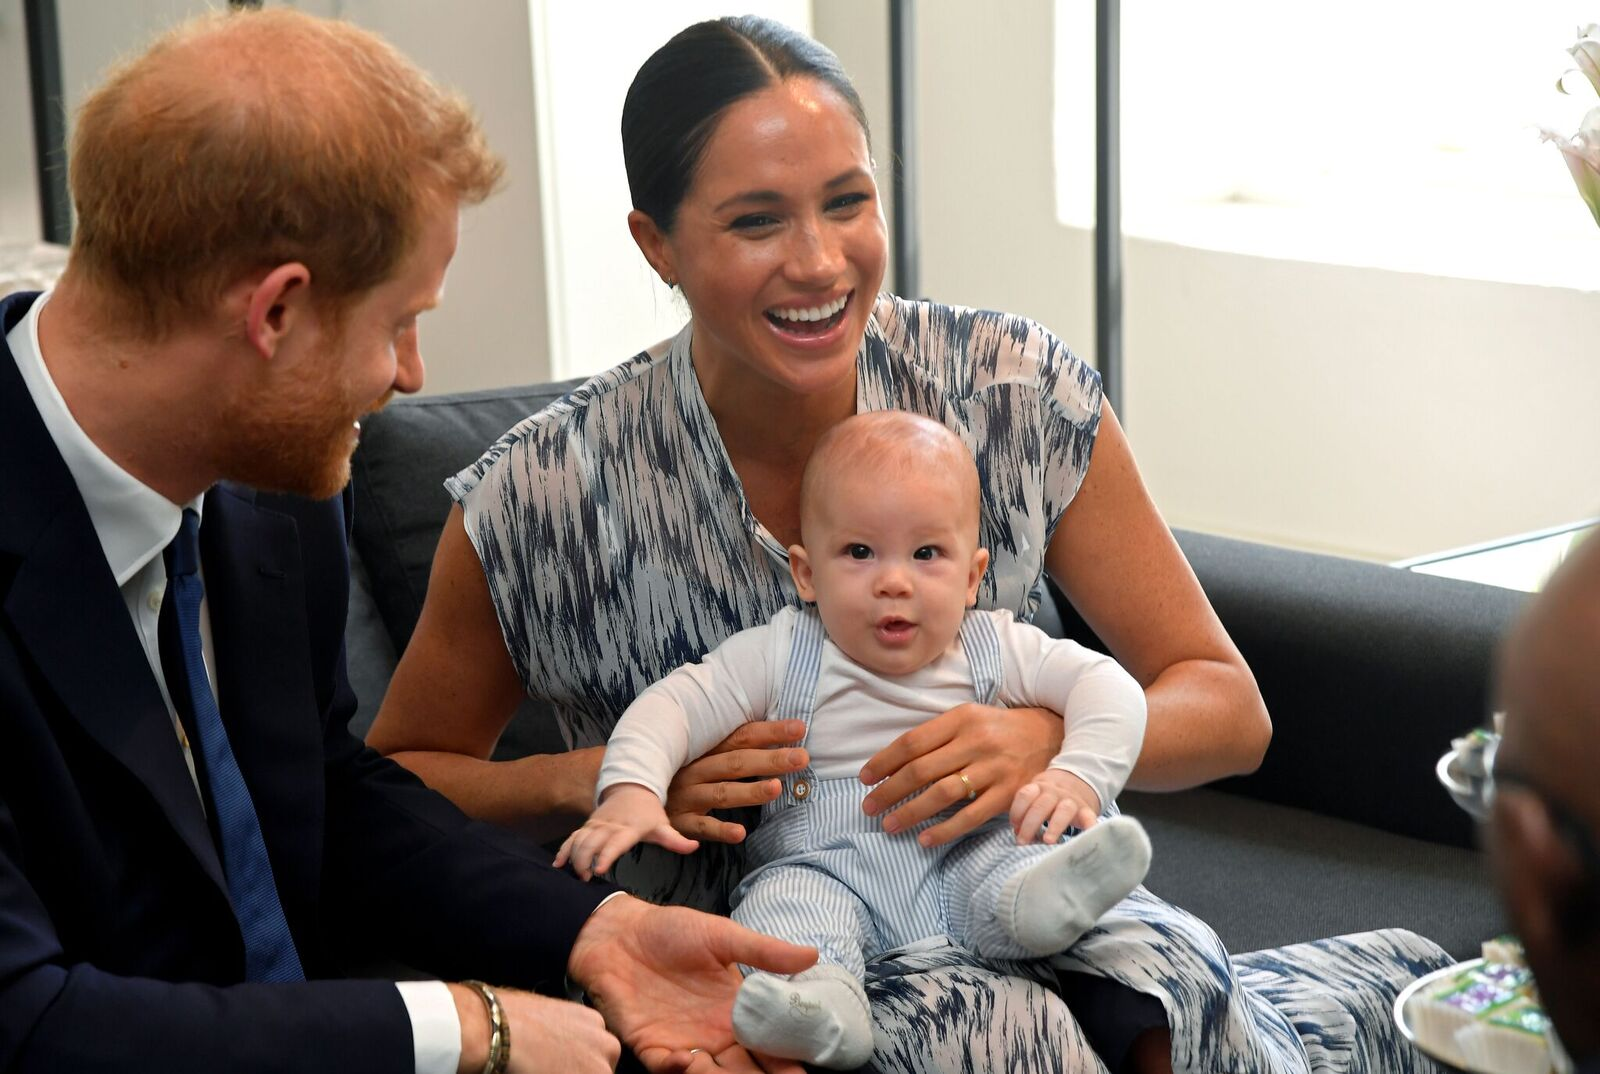 Prince Harry and Duchess Meghan with baby Archie Mountbatten-Windsor at the Desmond & Leah Tutu Legacy Foundation on September 25, 2019, in Cape Town, South Africa | Photo: Toby Melville - Pool/Getty Images